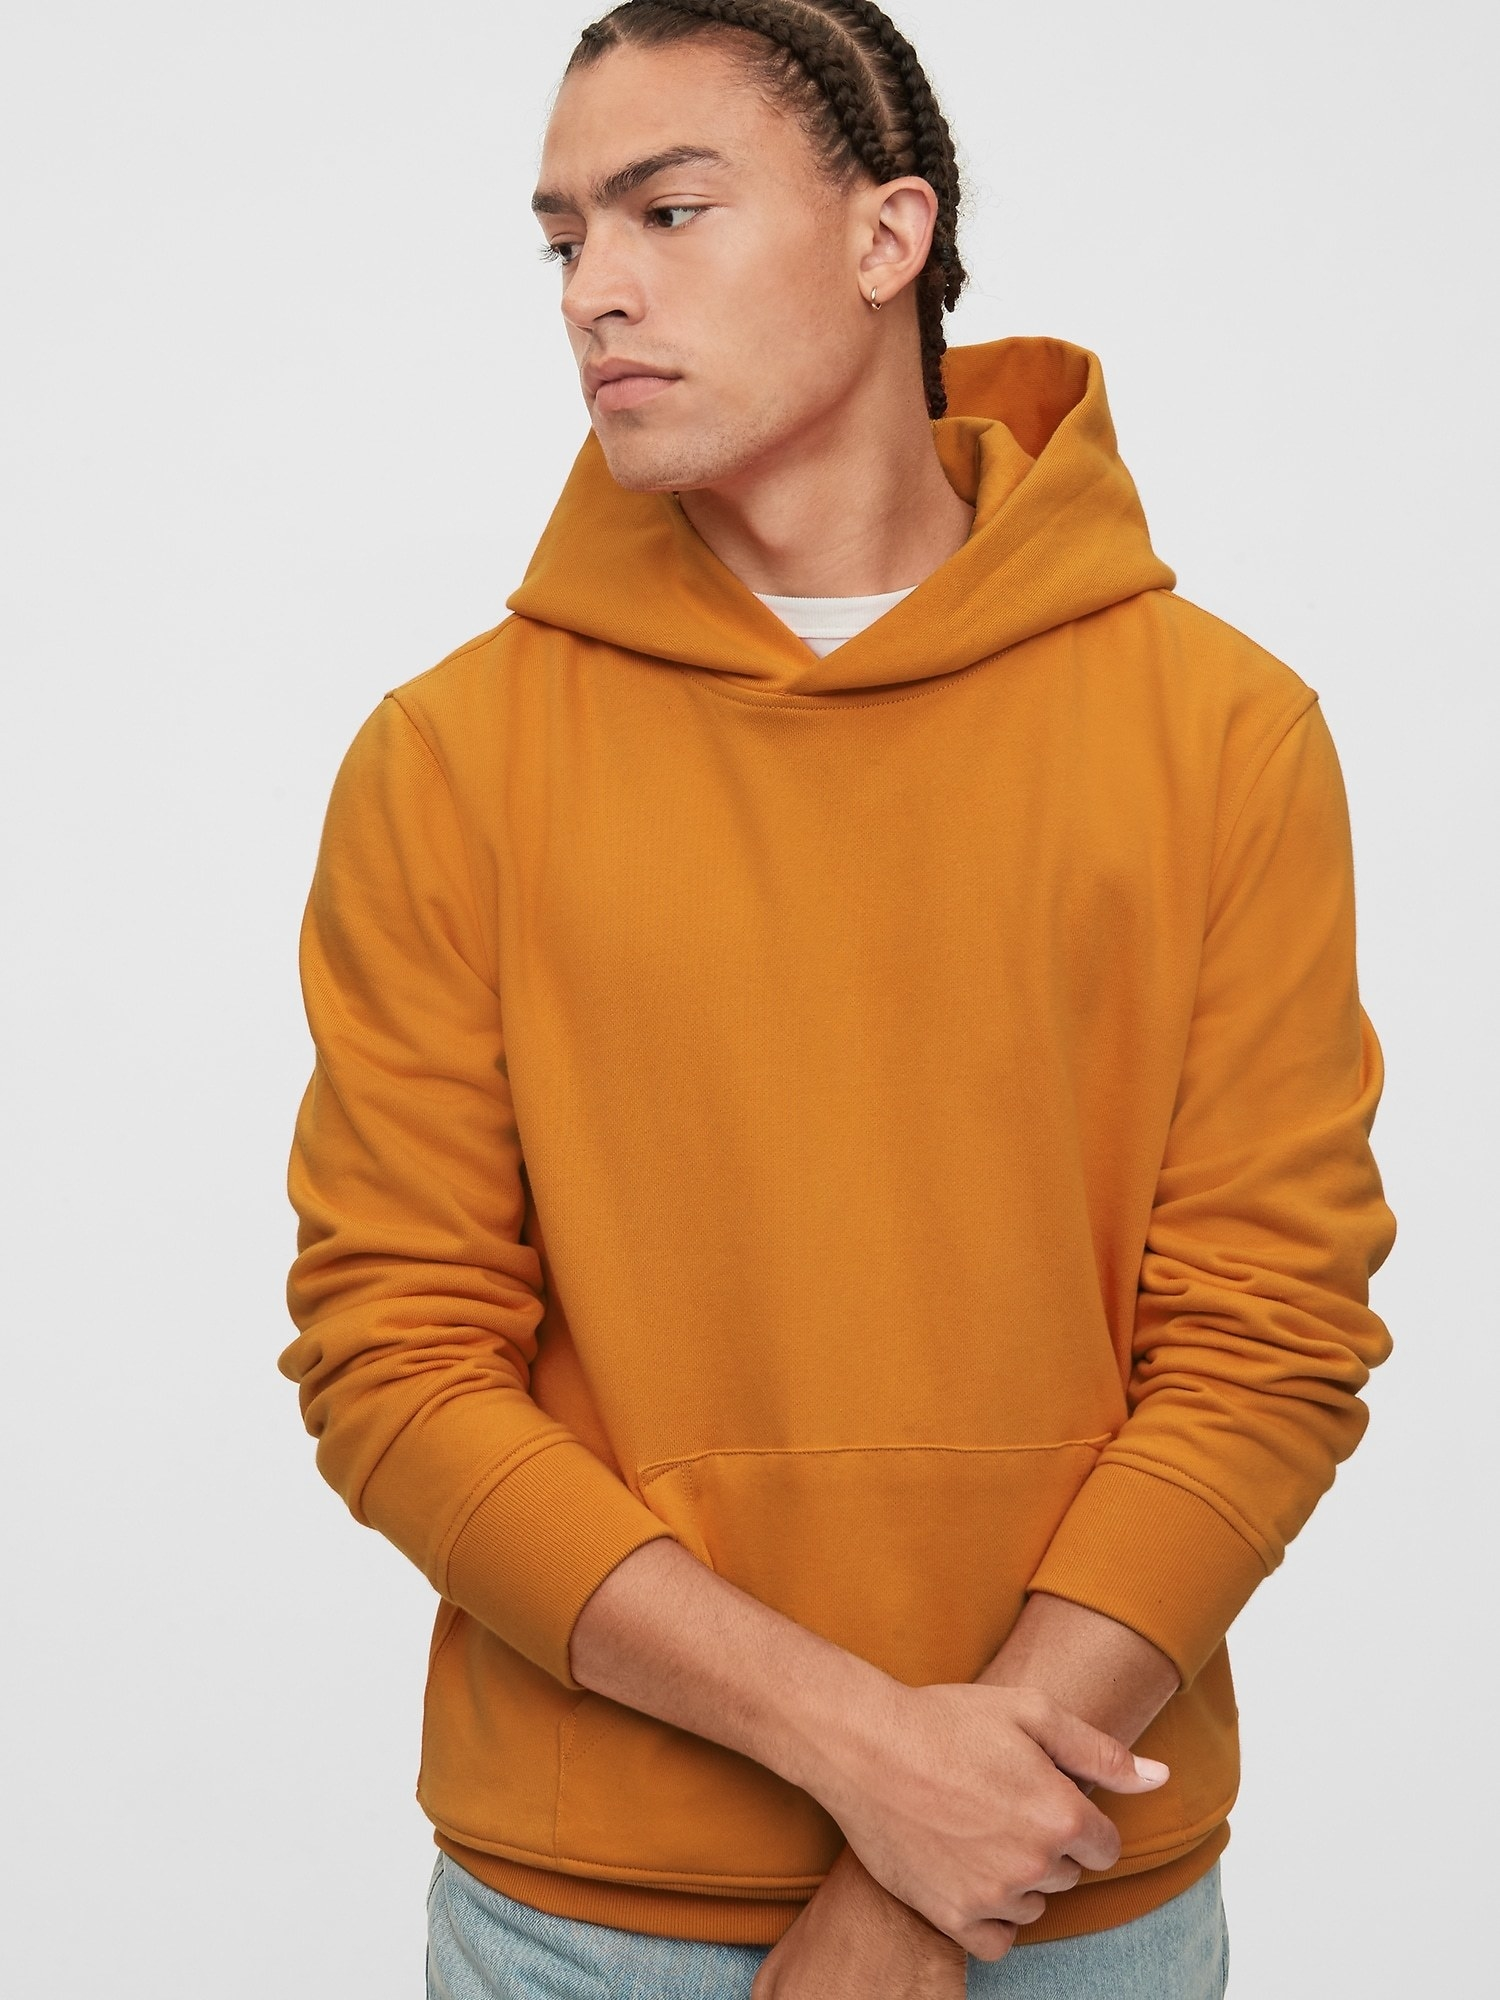 model wearing vintage soft hoodie in autumn orange